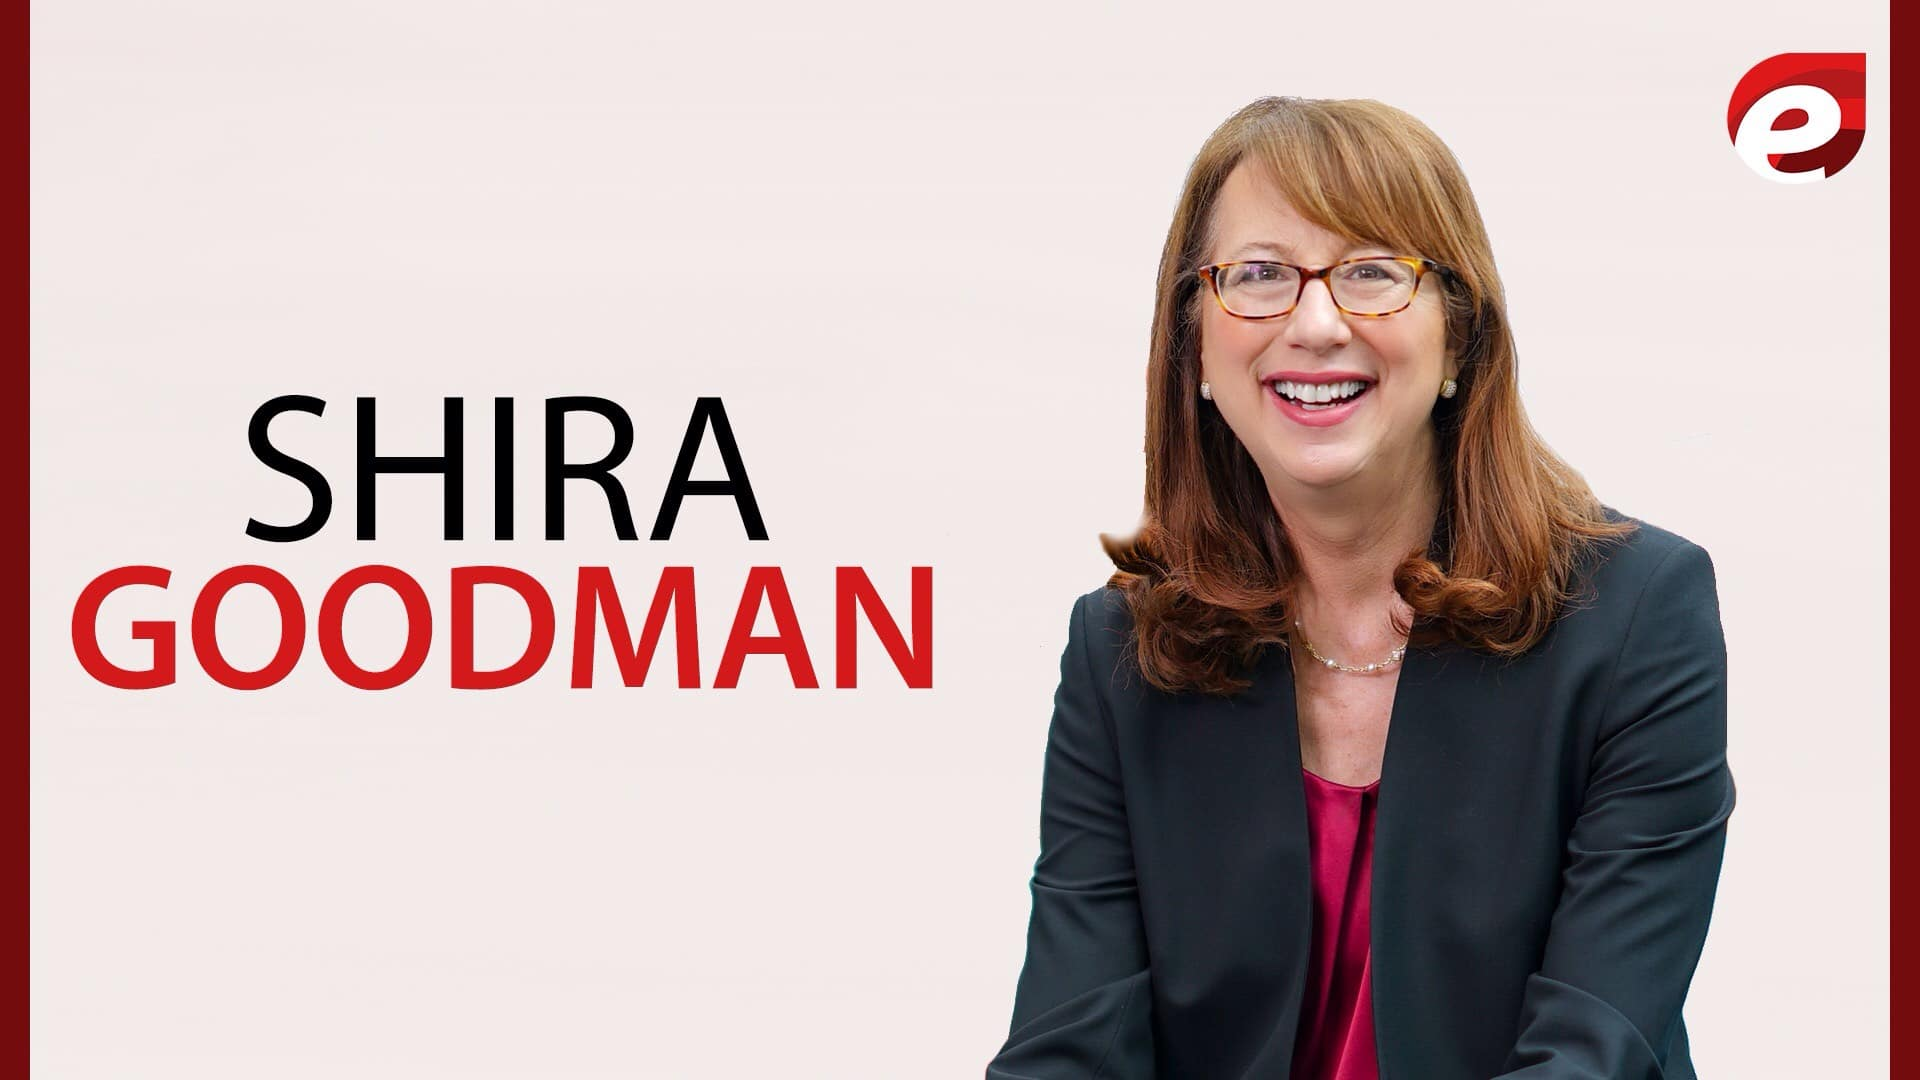 15 most powerful women of 2017- Shira Goodman